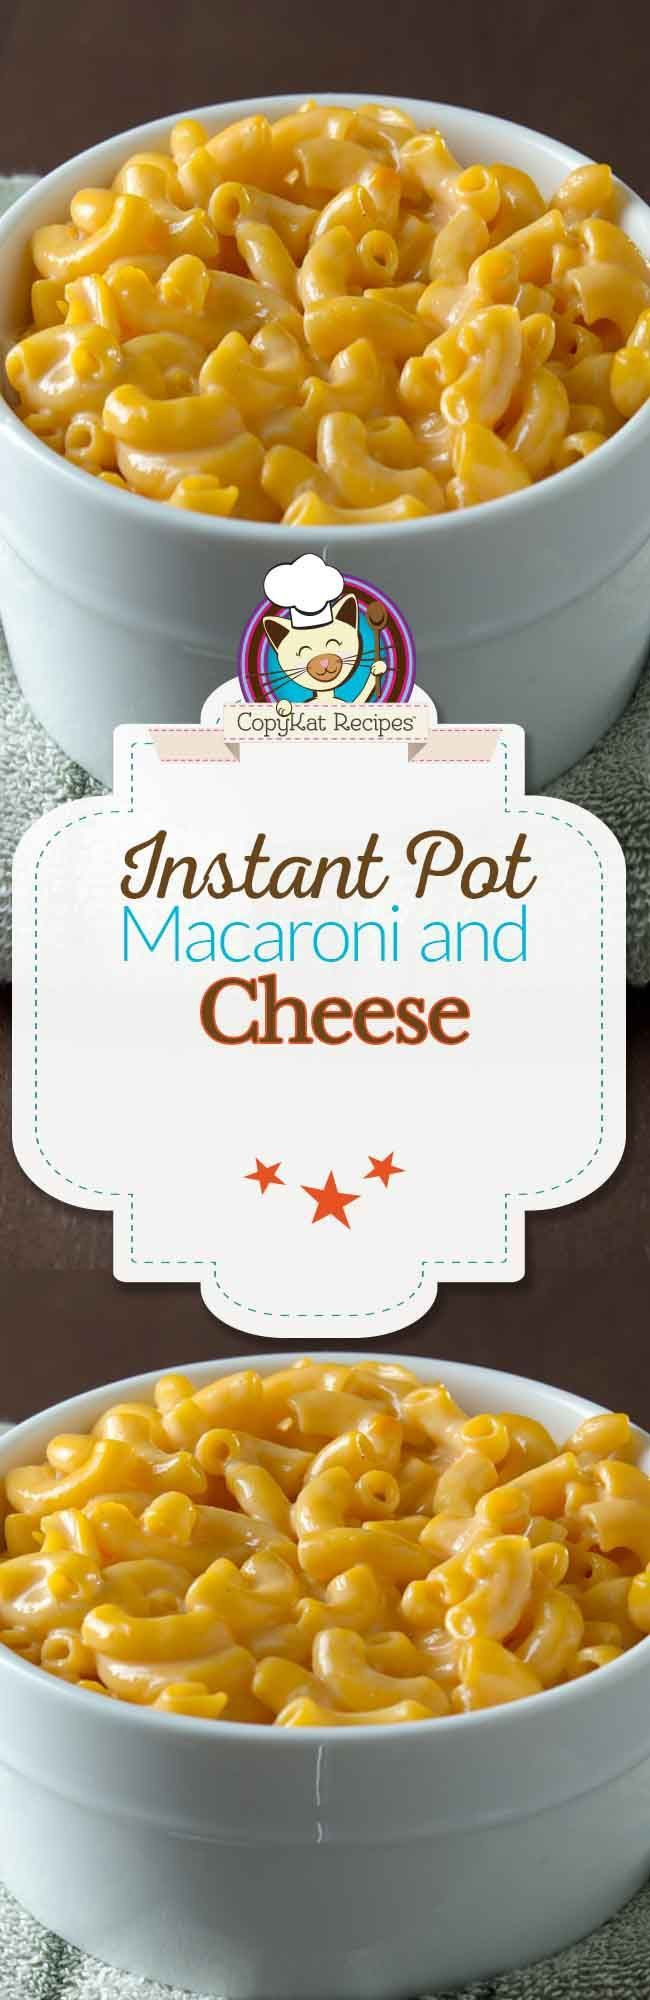 Instant Pot Macaroni and Cheese is the perfect recipe to make when you want to try something new in your pressure cooker. Yes, you can make mac and cheese.